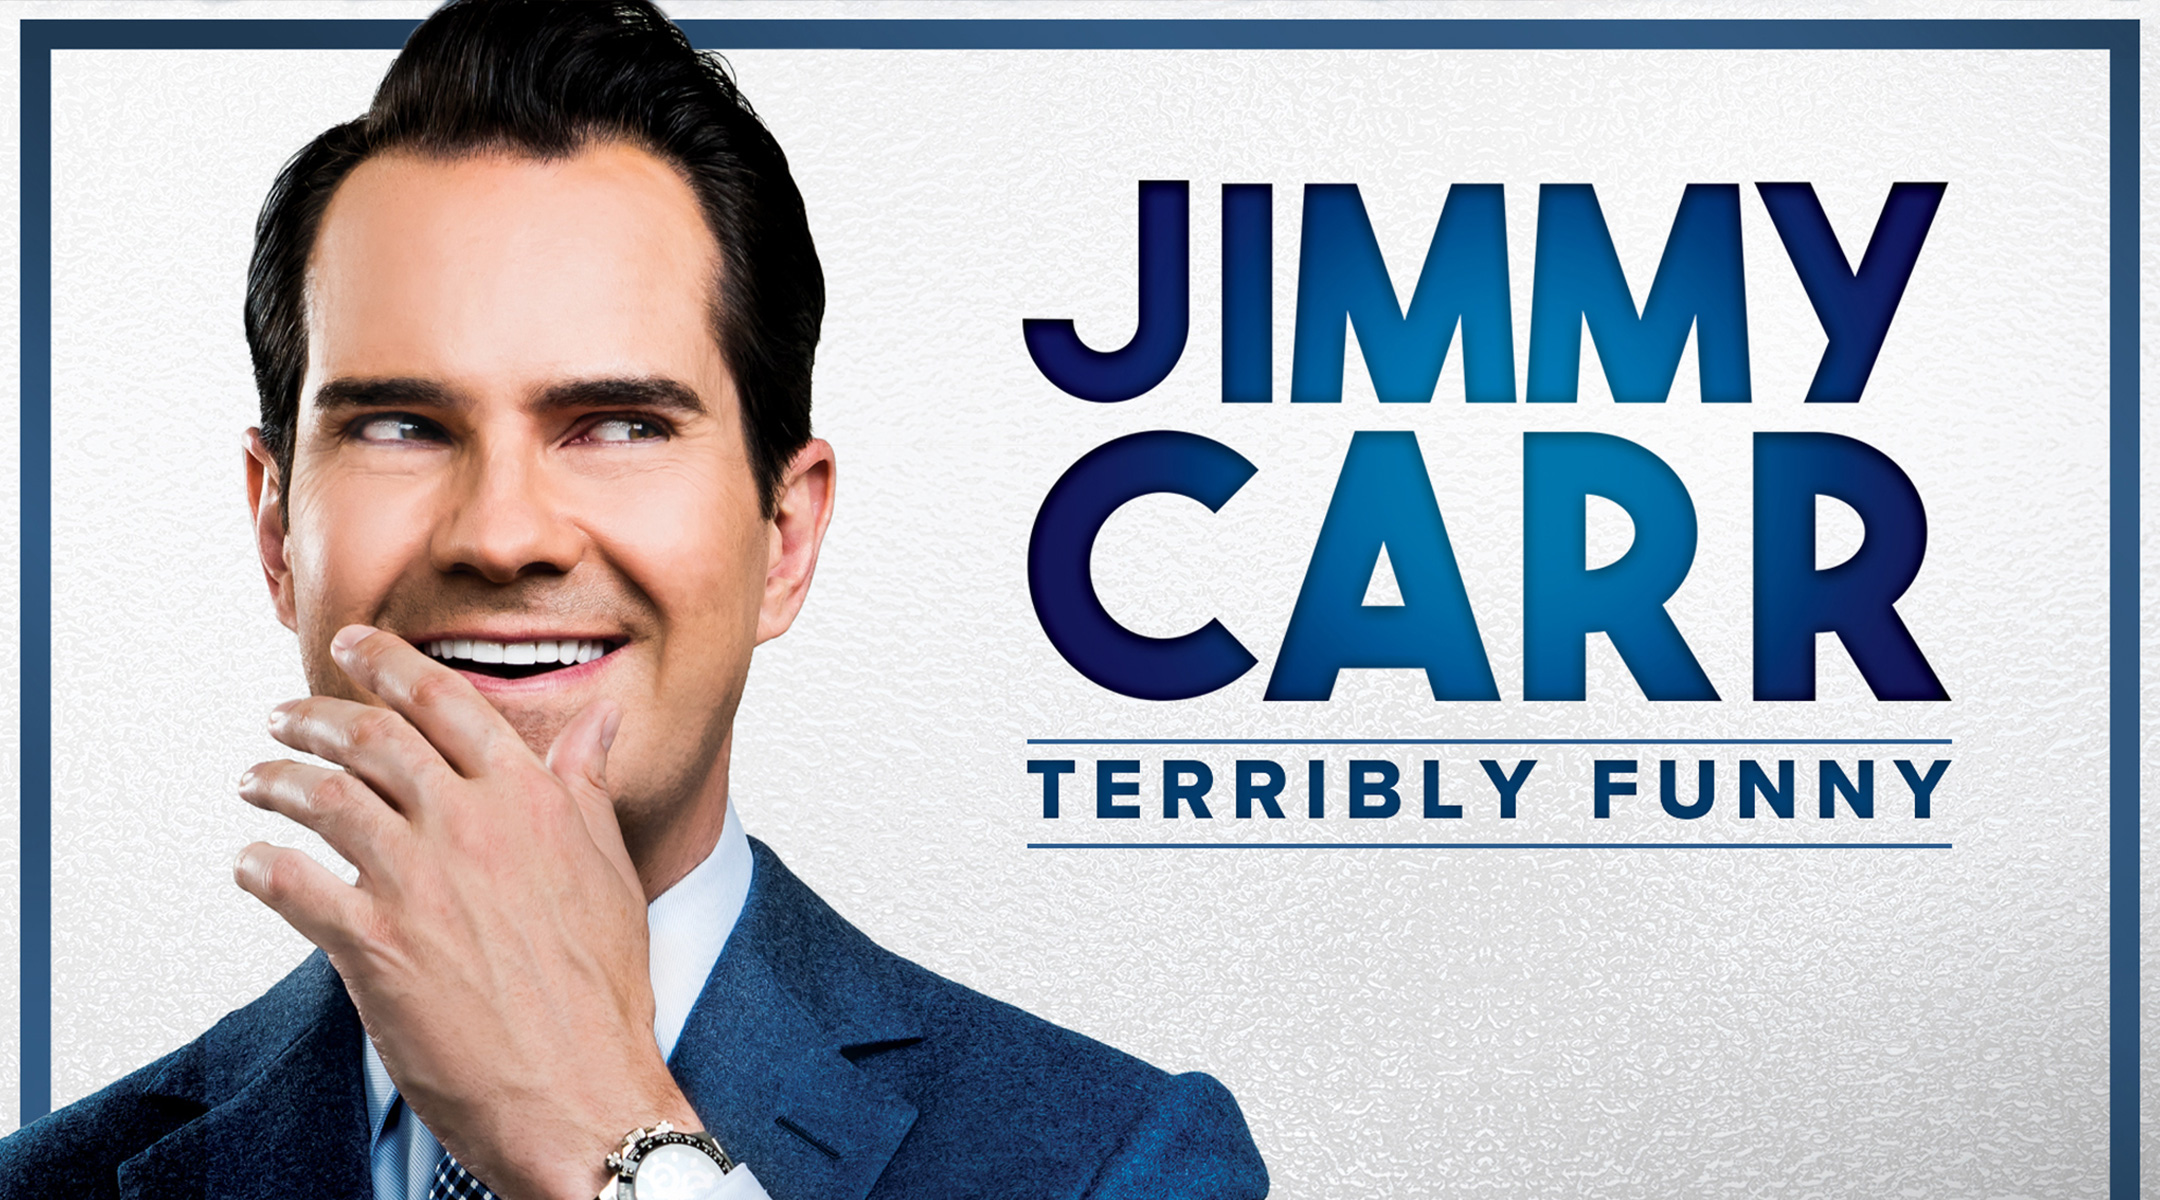 Jimmy Carr: Terribly Funny - Crawley - 2nd